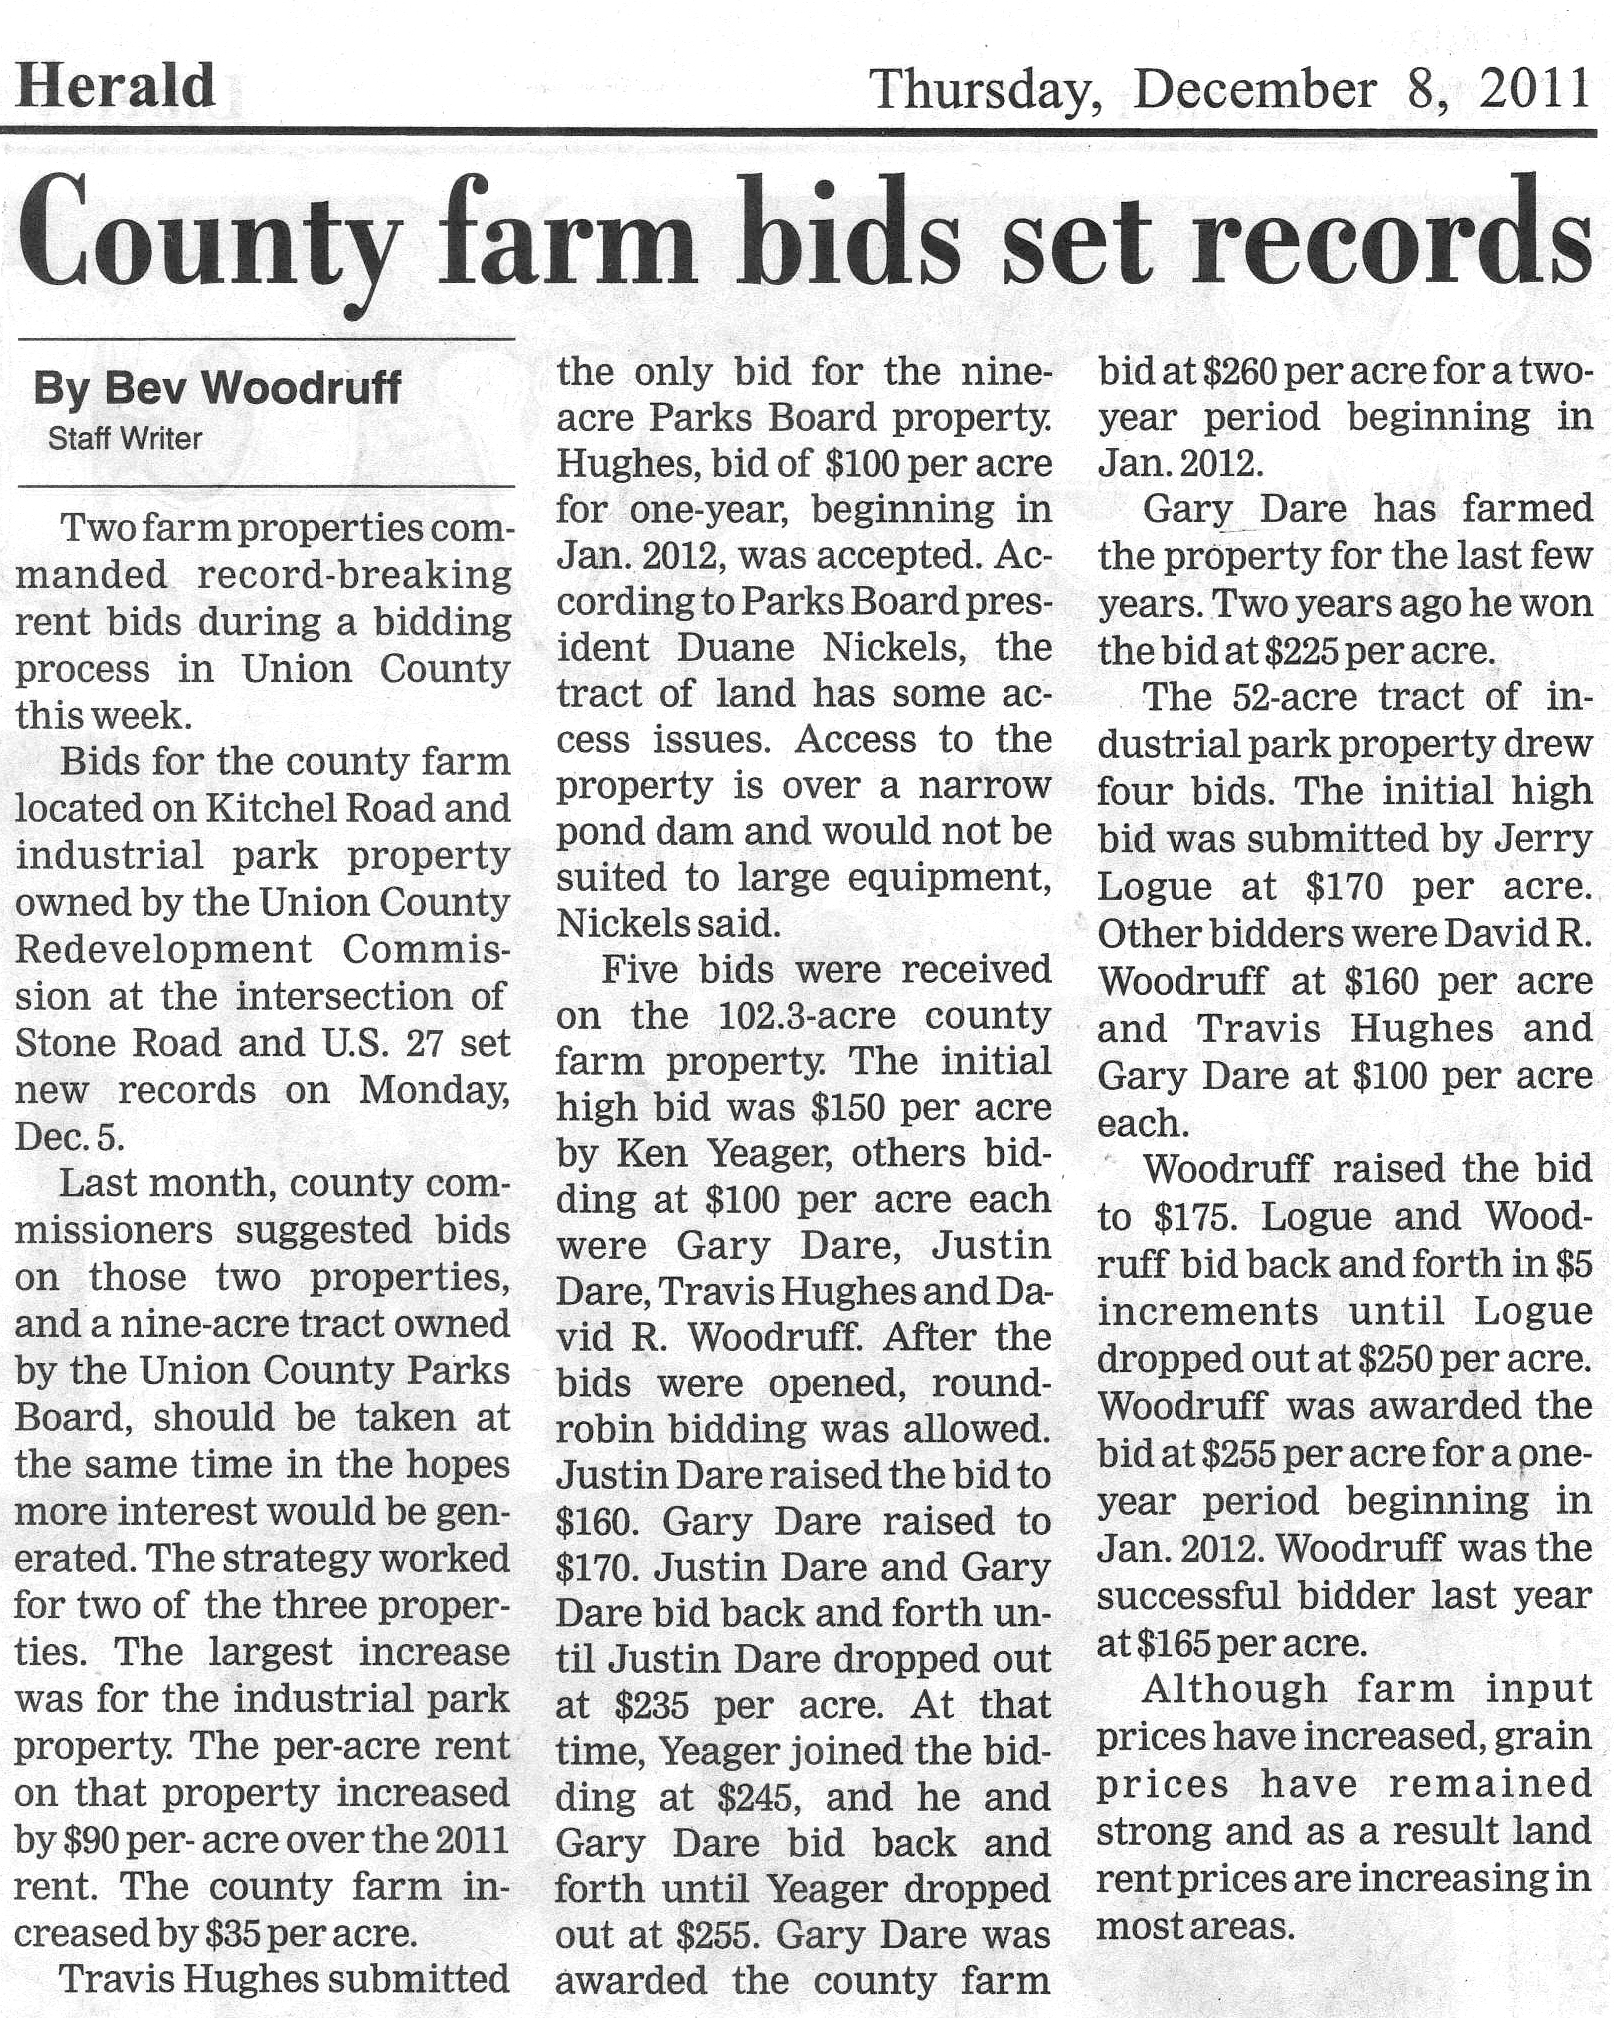 County Farm Bids Set Records - Liberty Herald December 8, 2011